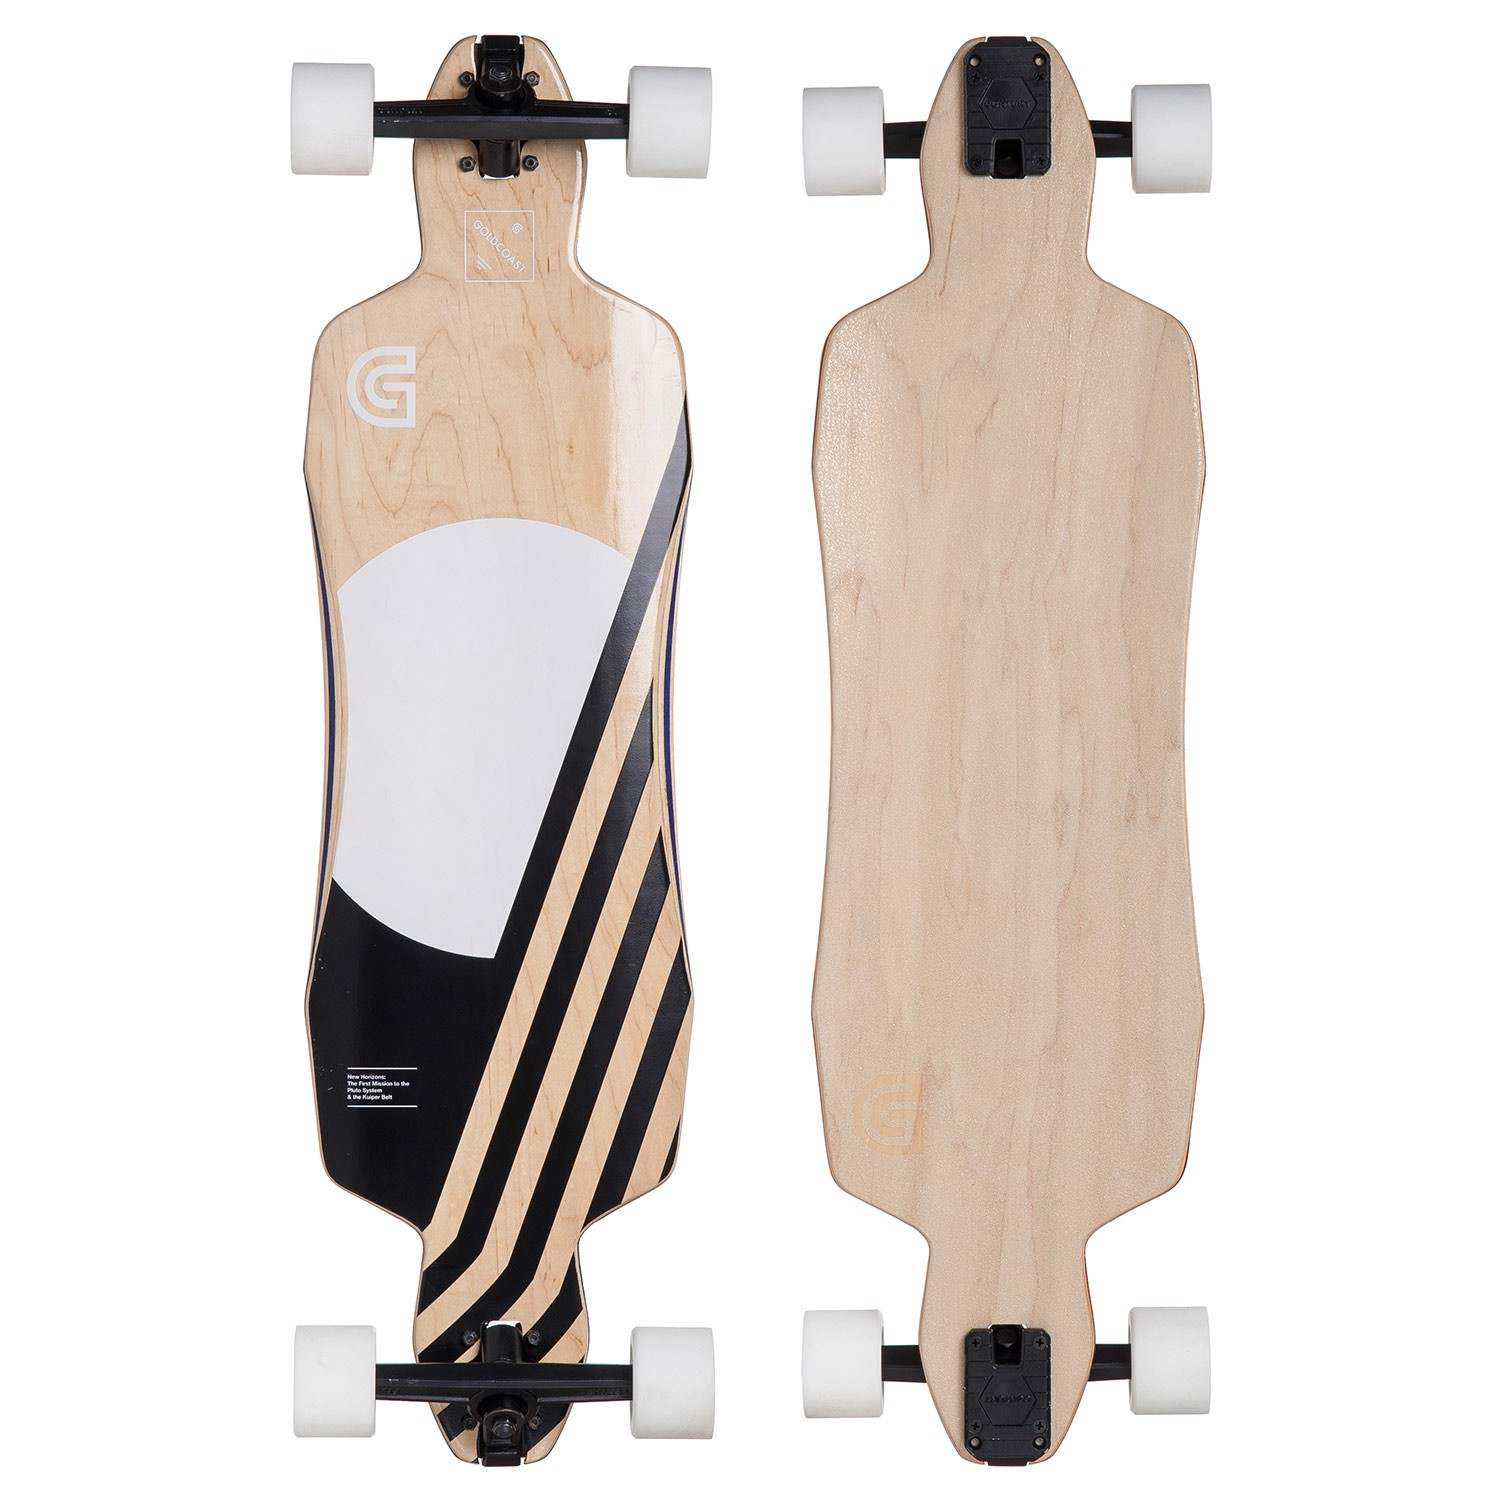 "Longboard Goldcoast Pluton Drop Through vel.36"" / 91 cm 16 + Kšiltovka Goldcoast ZDARMA"